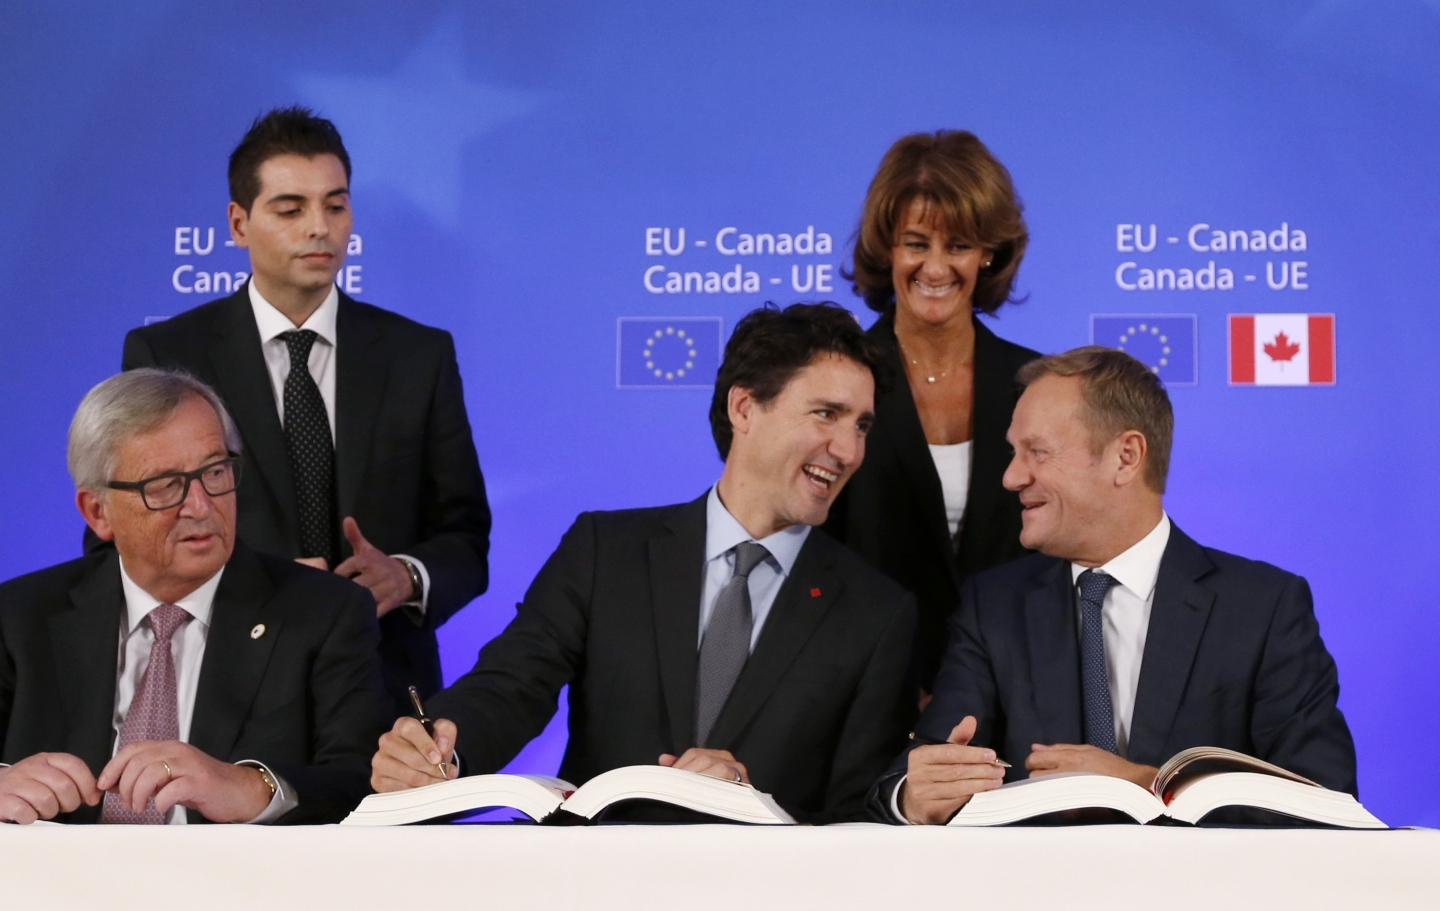 Prime Minister Justin Trudeau sits with European Council President Donald Tusk as they sign the Comprehensive Economic and Trade Agreement (CETA). (Francois Lenoir/AP Photo)